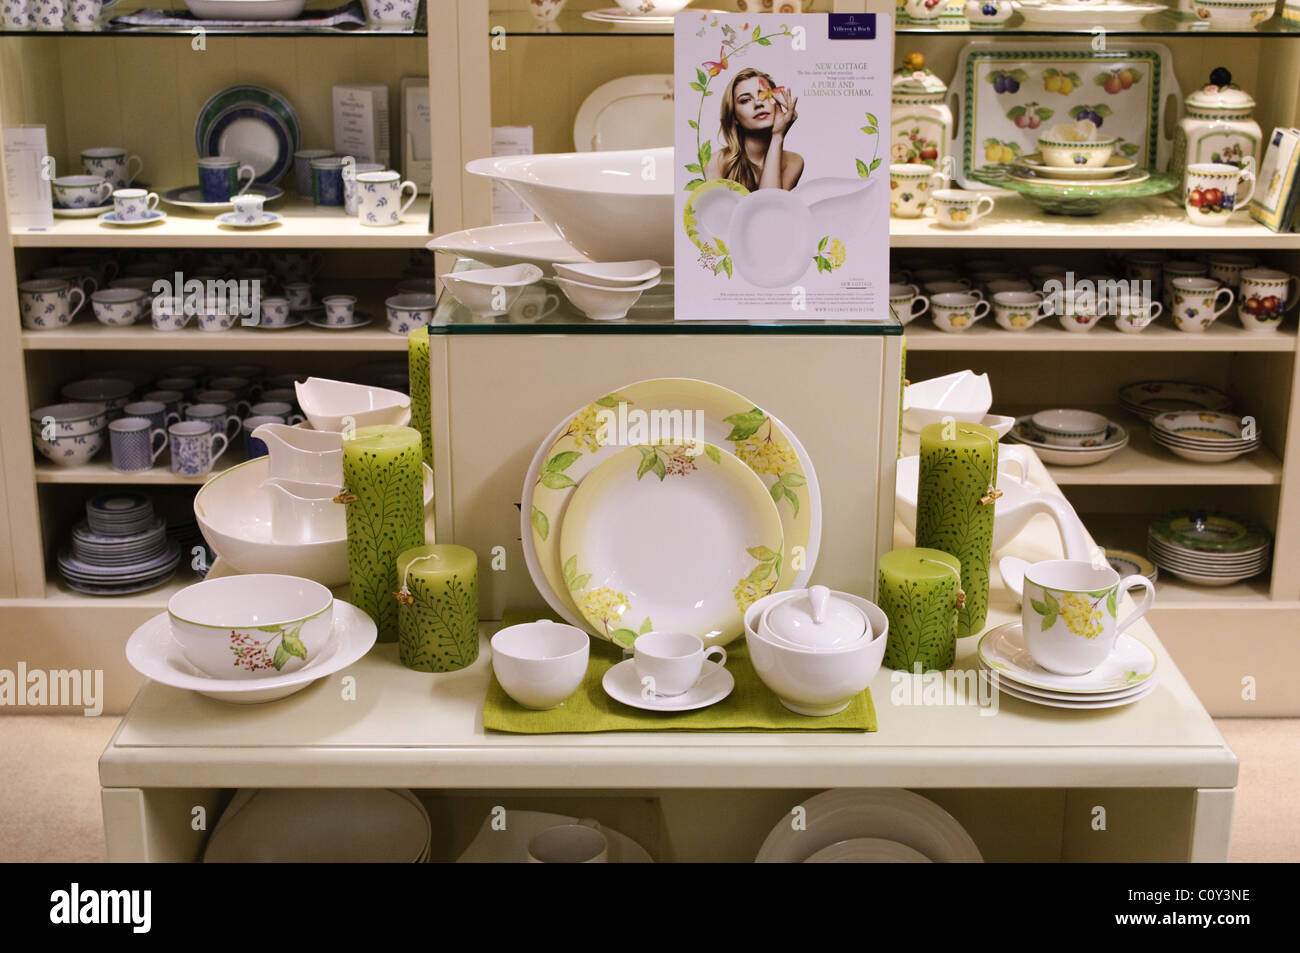 Villeroy U0026 Boch Tableware On Display In A China Shop